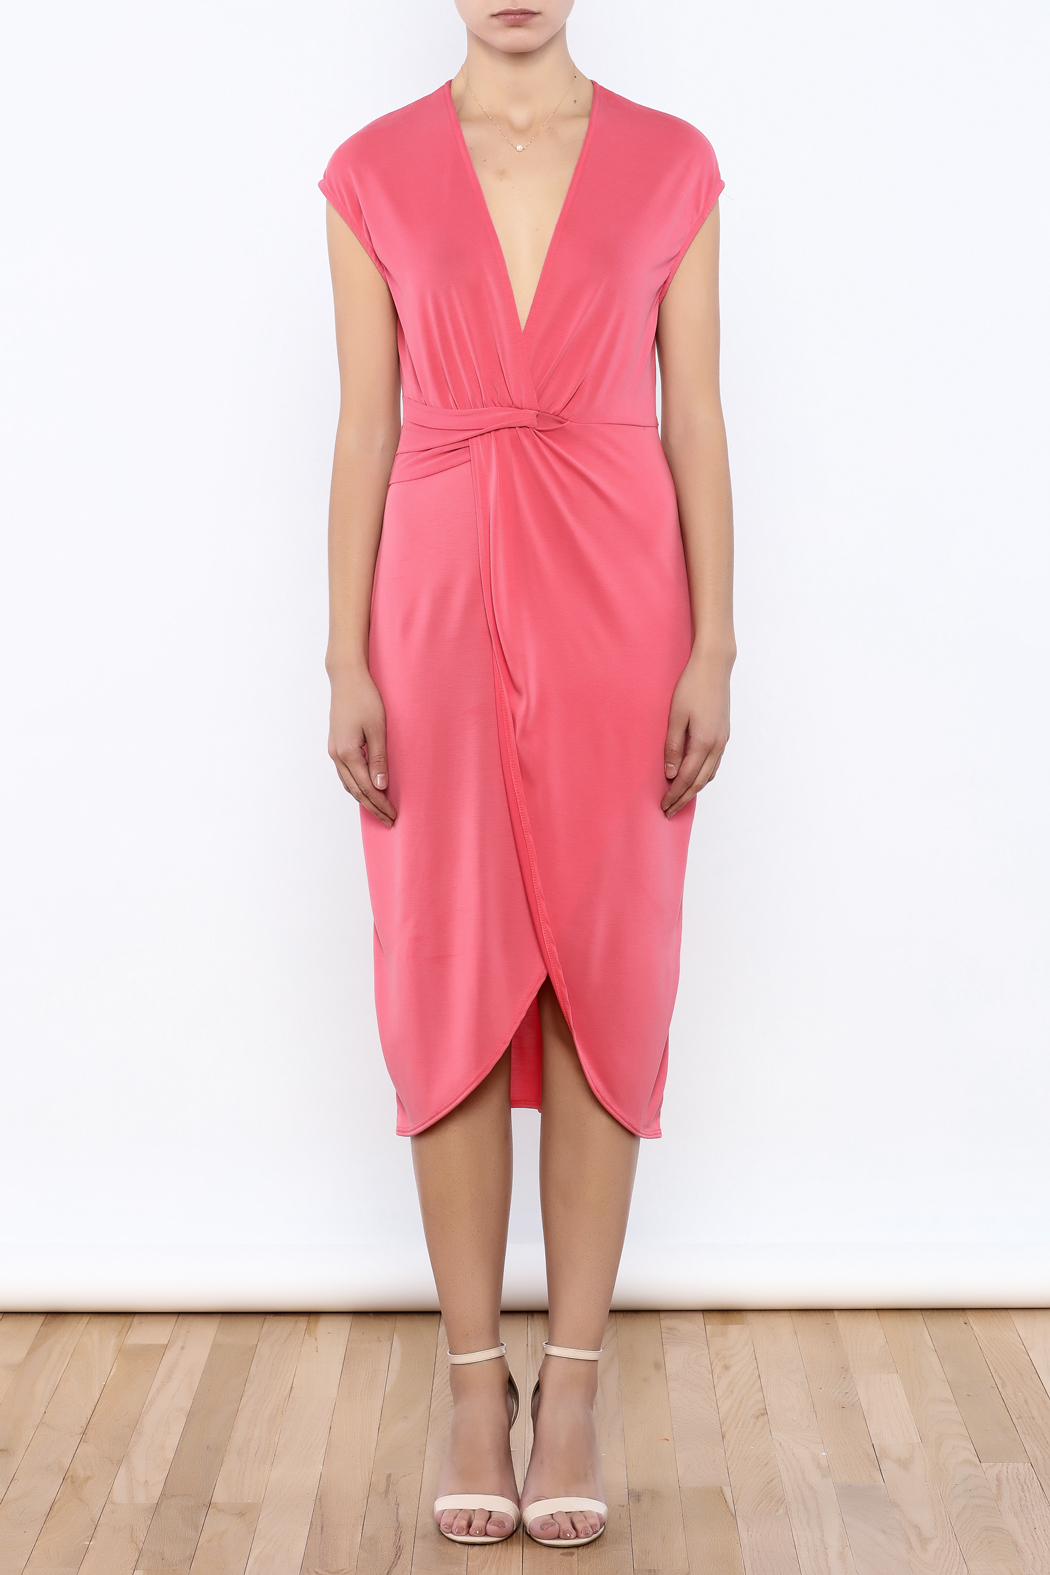 Bacio Coral Dress - Front Cropped Image